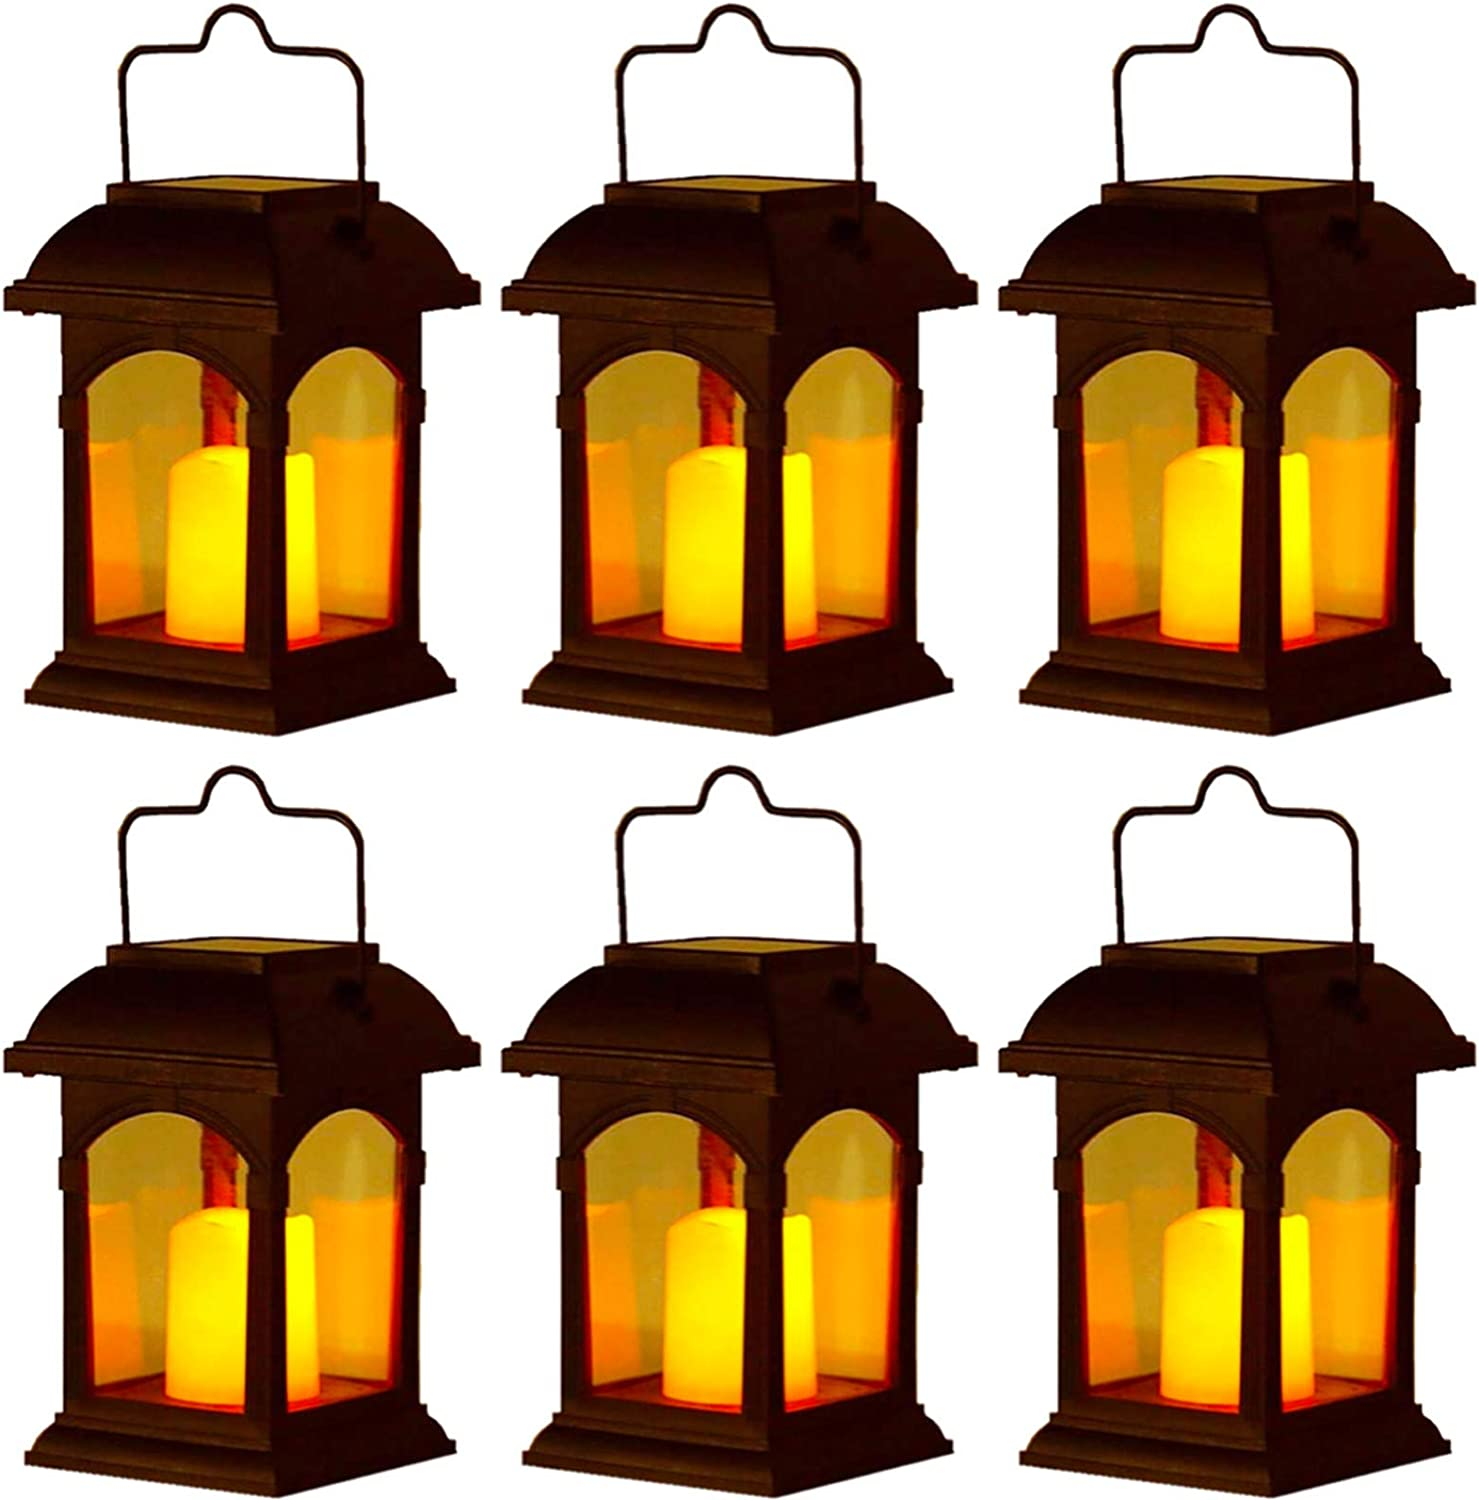 Translated Clihere Solar Lantern Outdoor Hanging E Retro Candle Discount is also underway Flickering